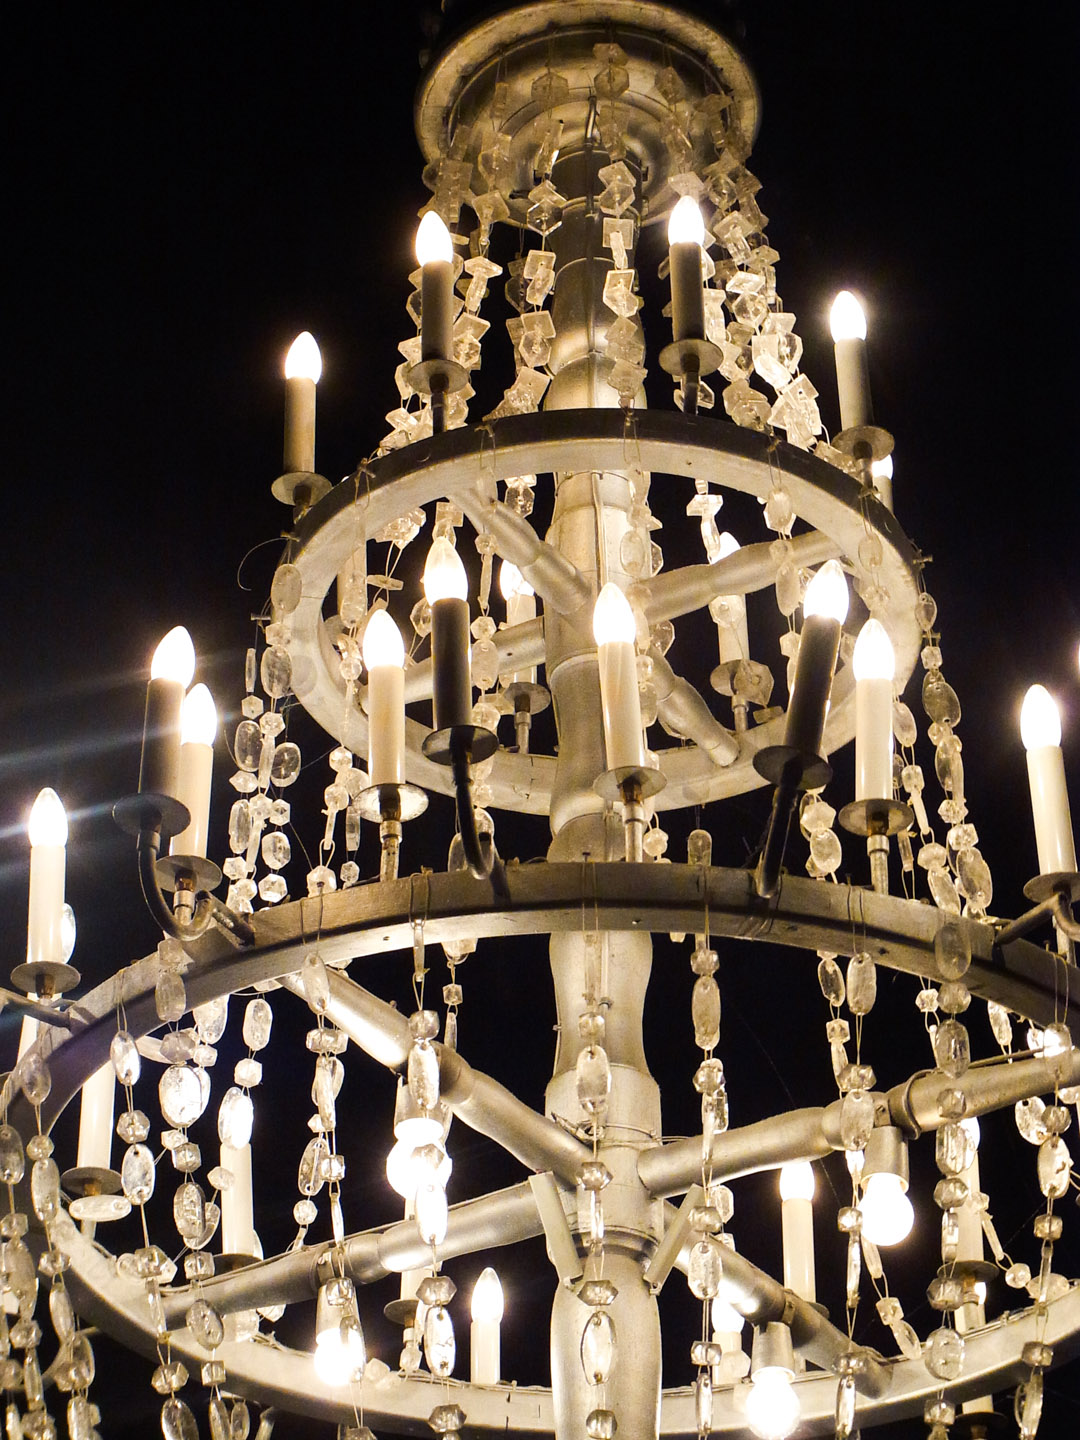 Marvelous Crystal salt crystal chandelier